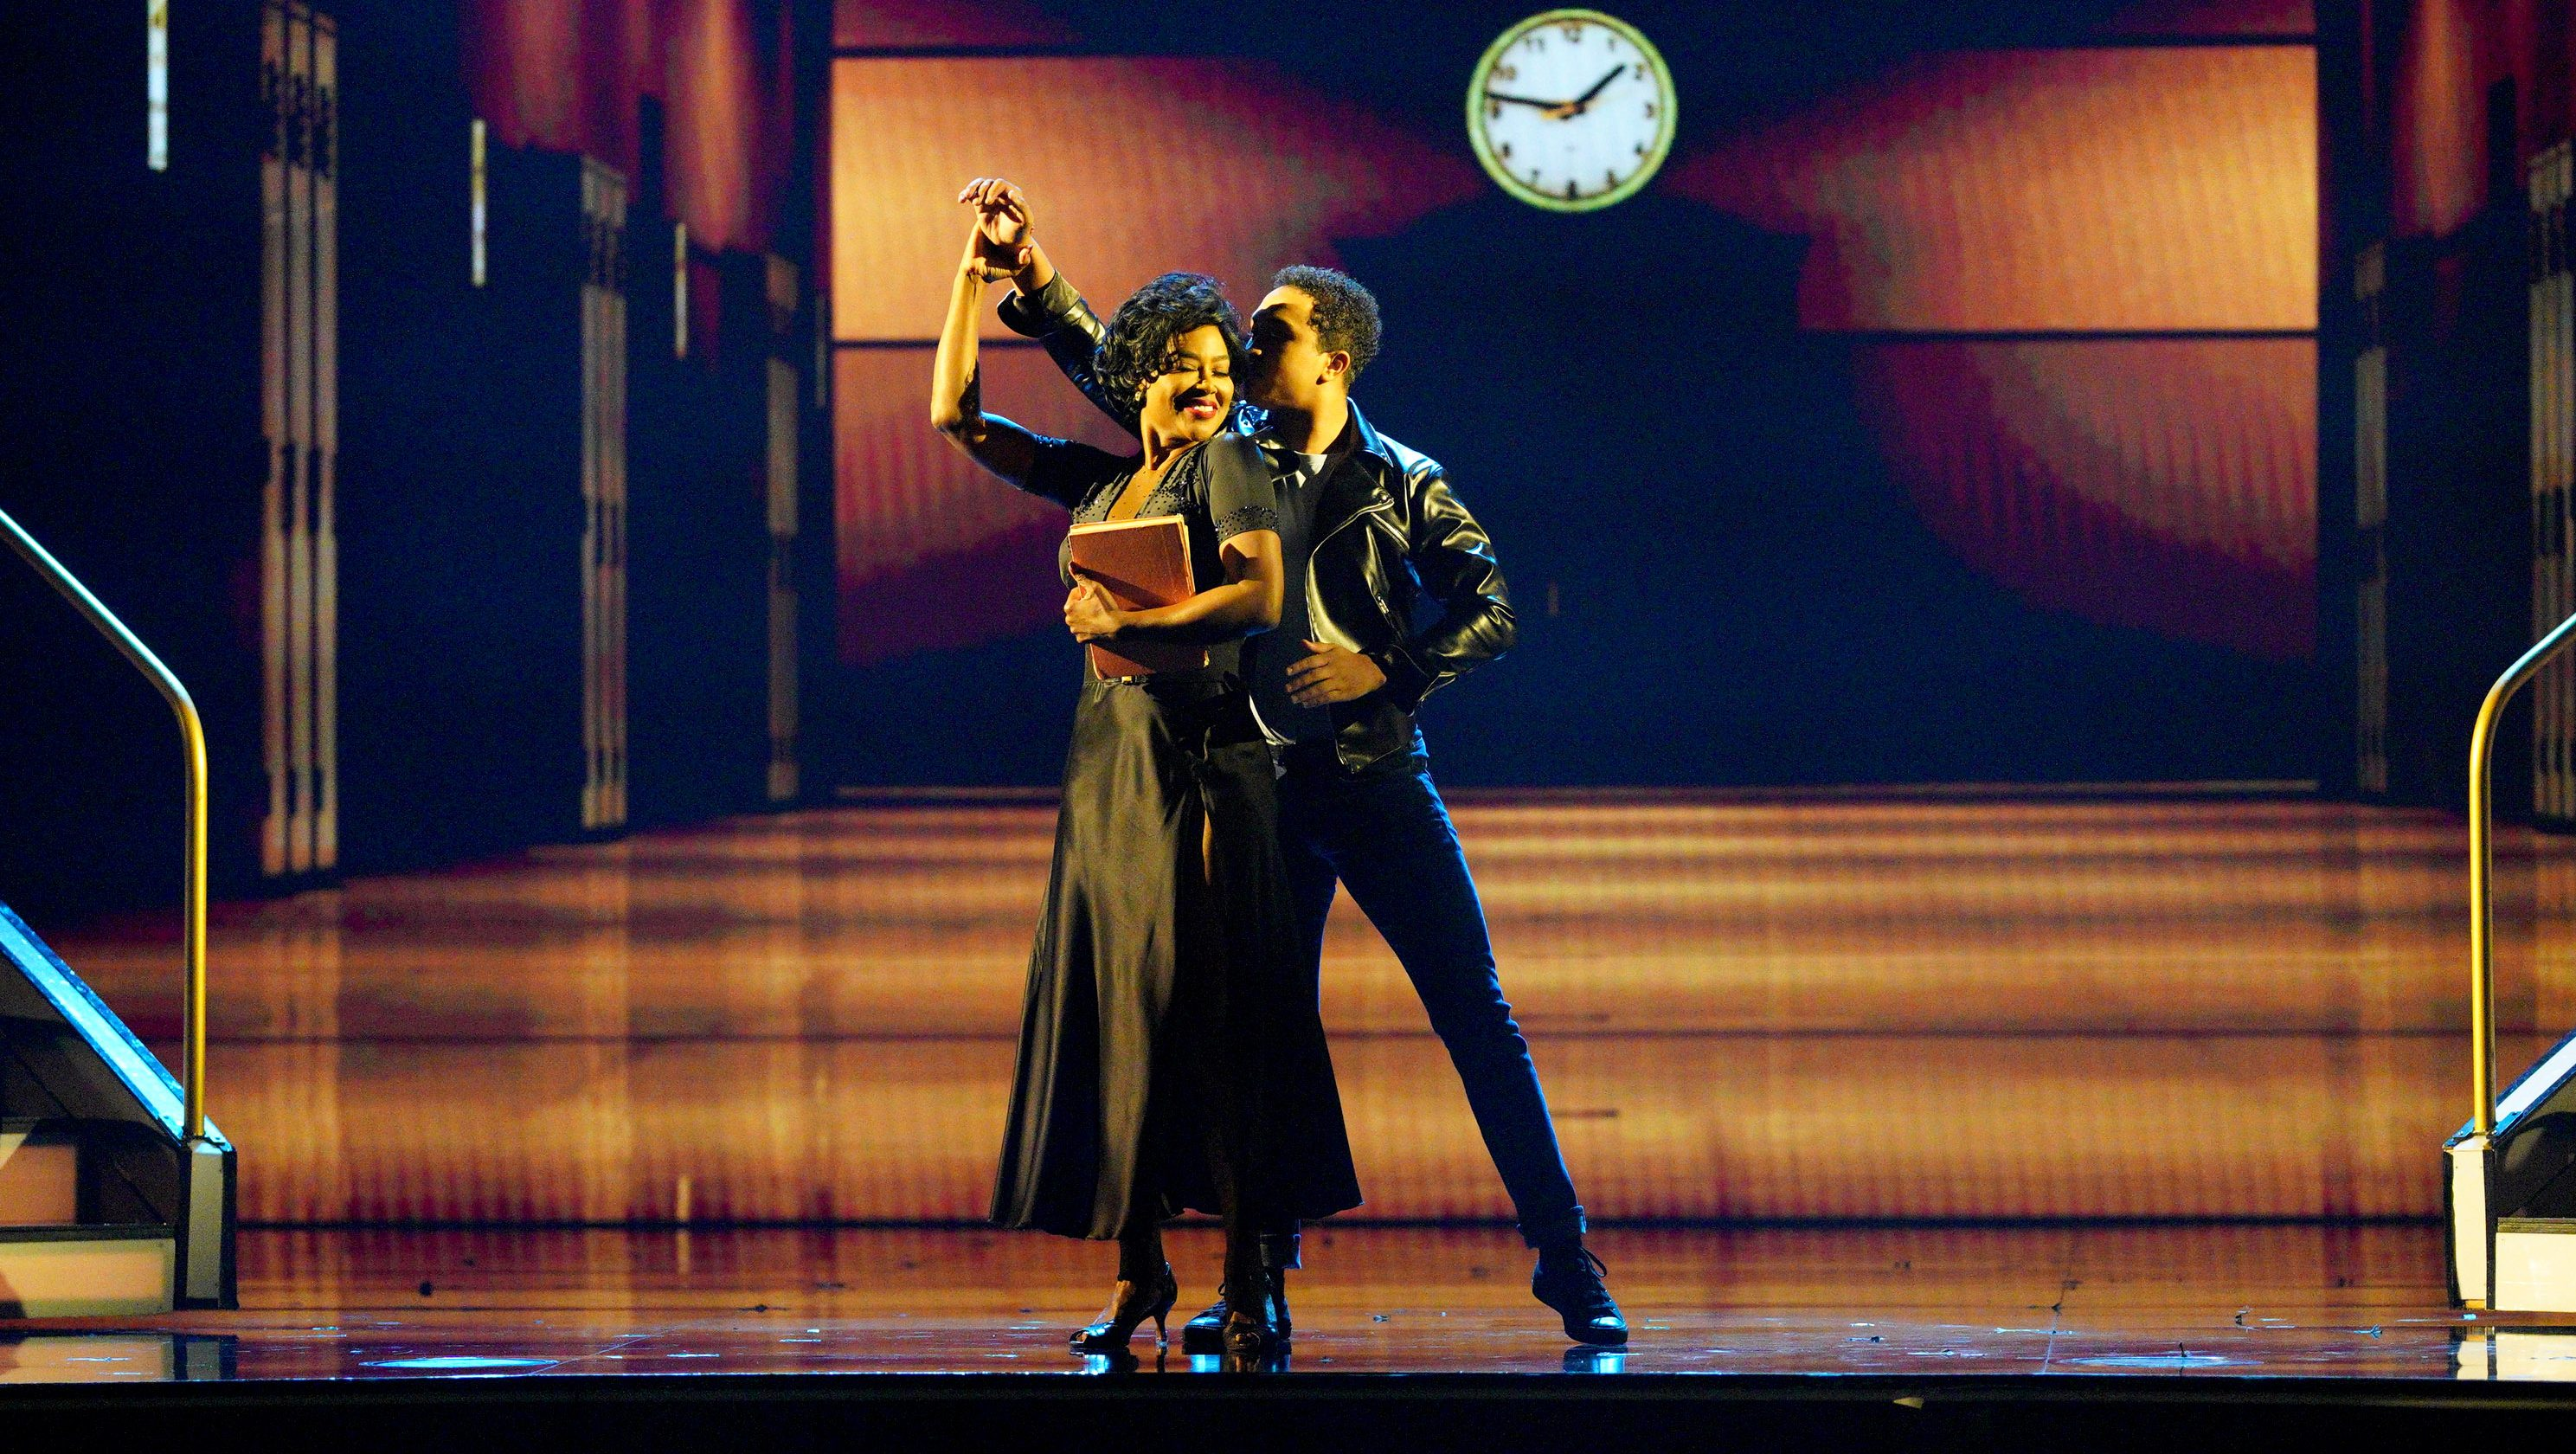 '9-1-1' &  'Dancing With The Stars' Tie In Monday Demo Rating To Dethrone 'The Voice'; 'NCIS' Wins Viewers